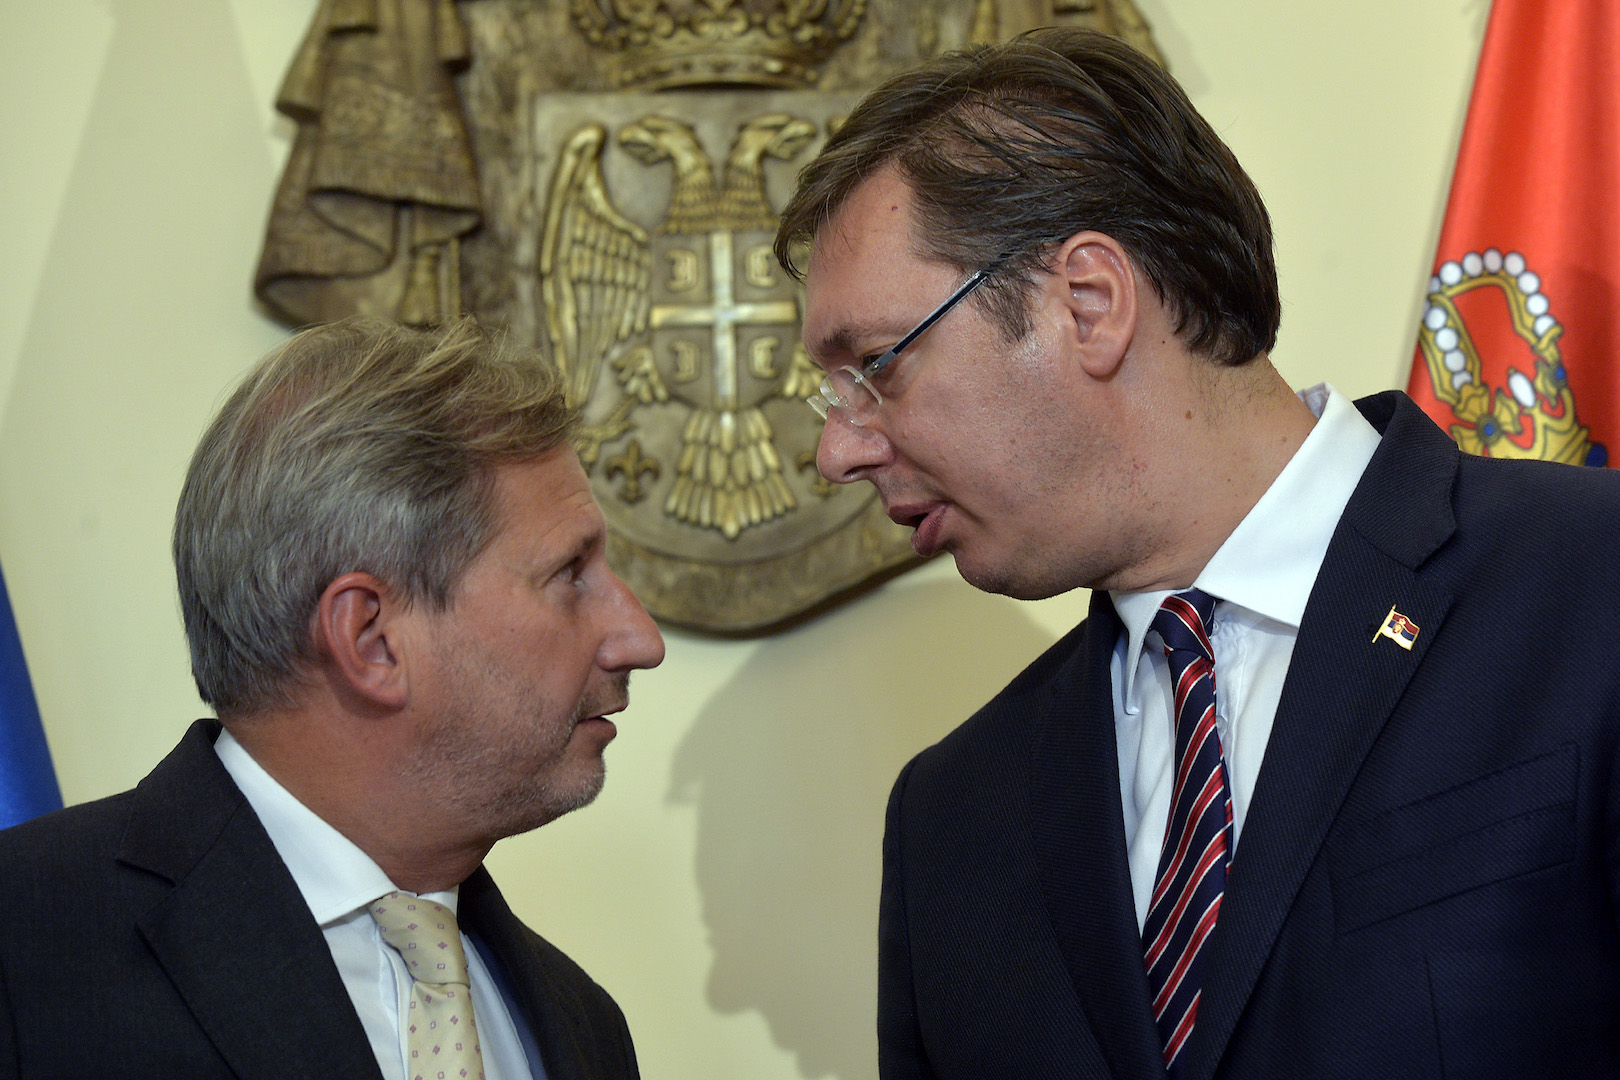 Vucic-Hahn discuss Kosovo and Metohija and the 'uneasy' situation Serbia is in